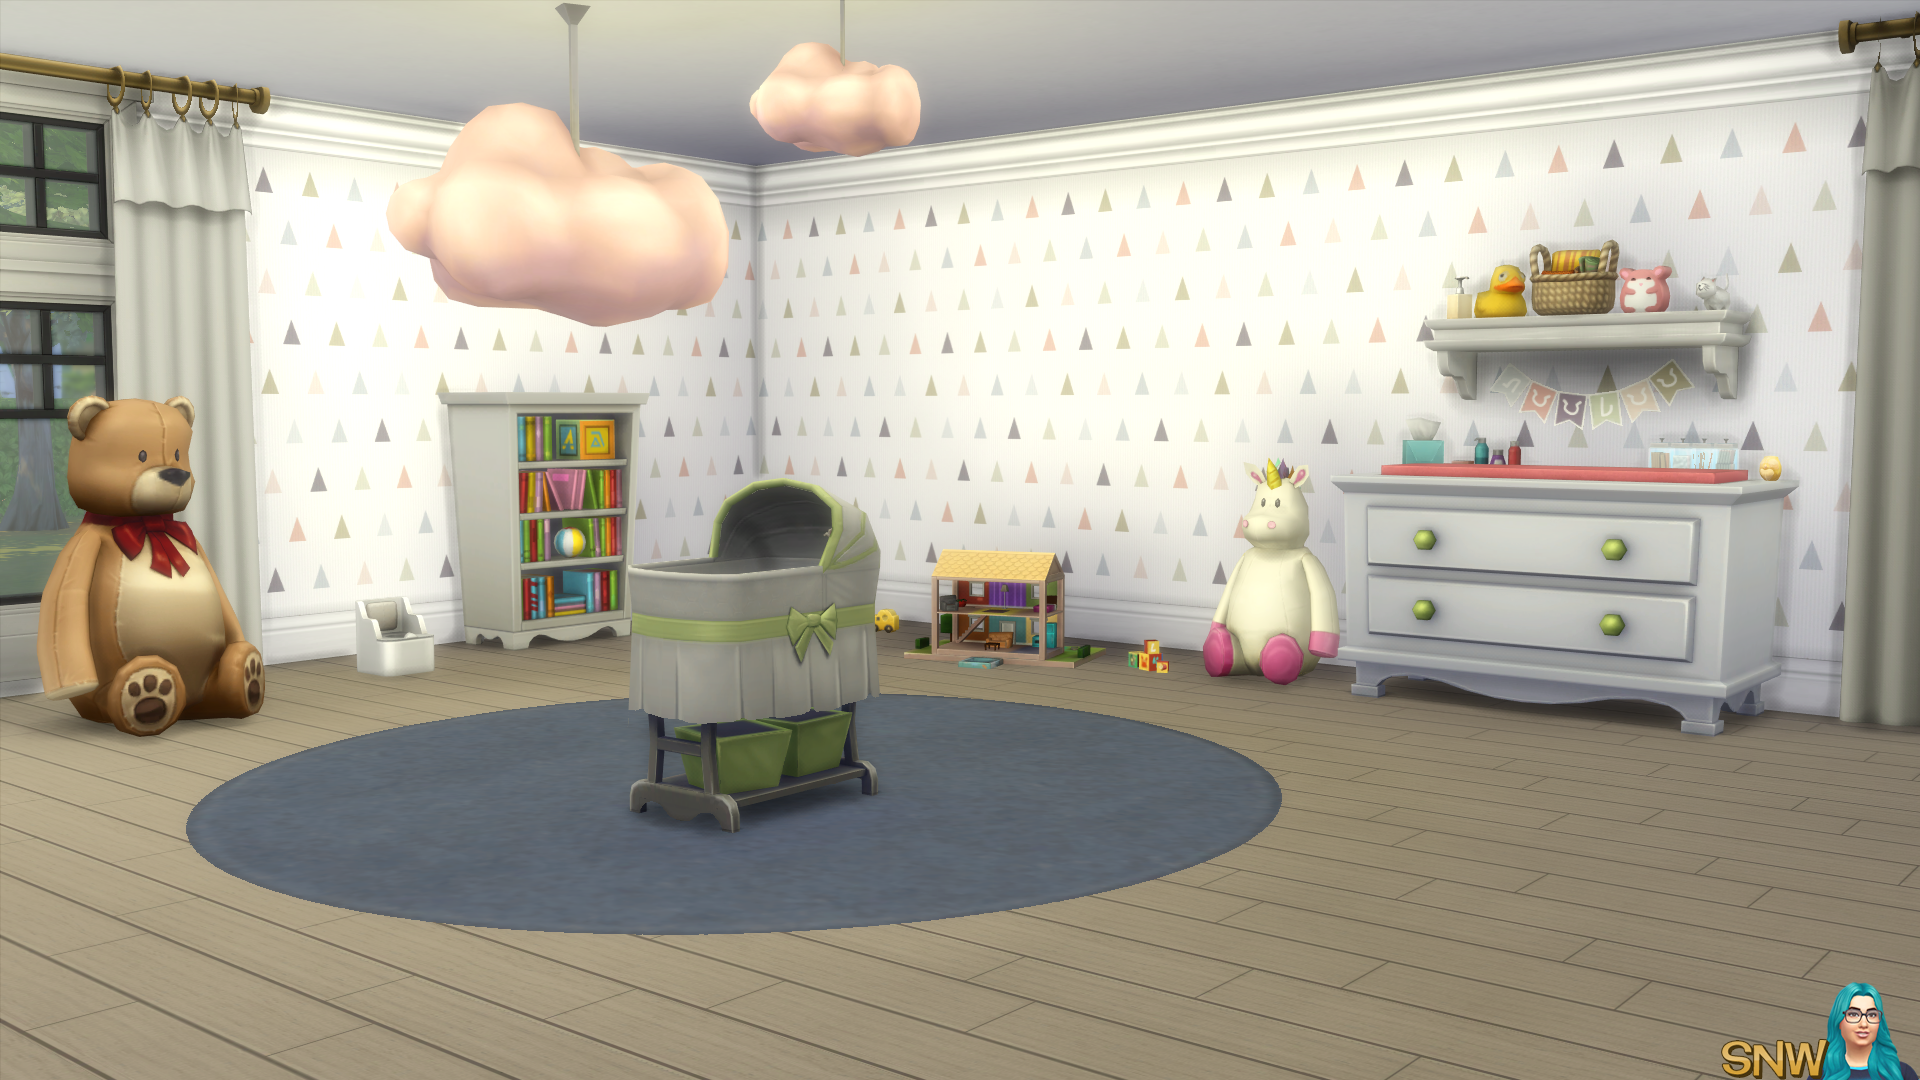 Nursery Walls Set #2 - Basics + Triangles